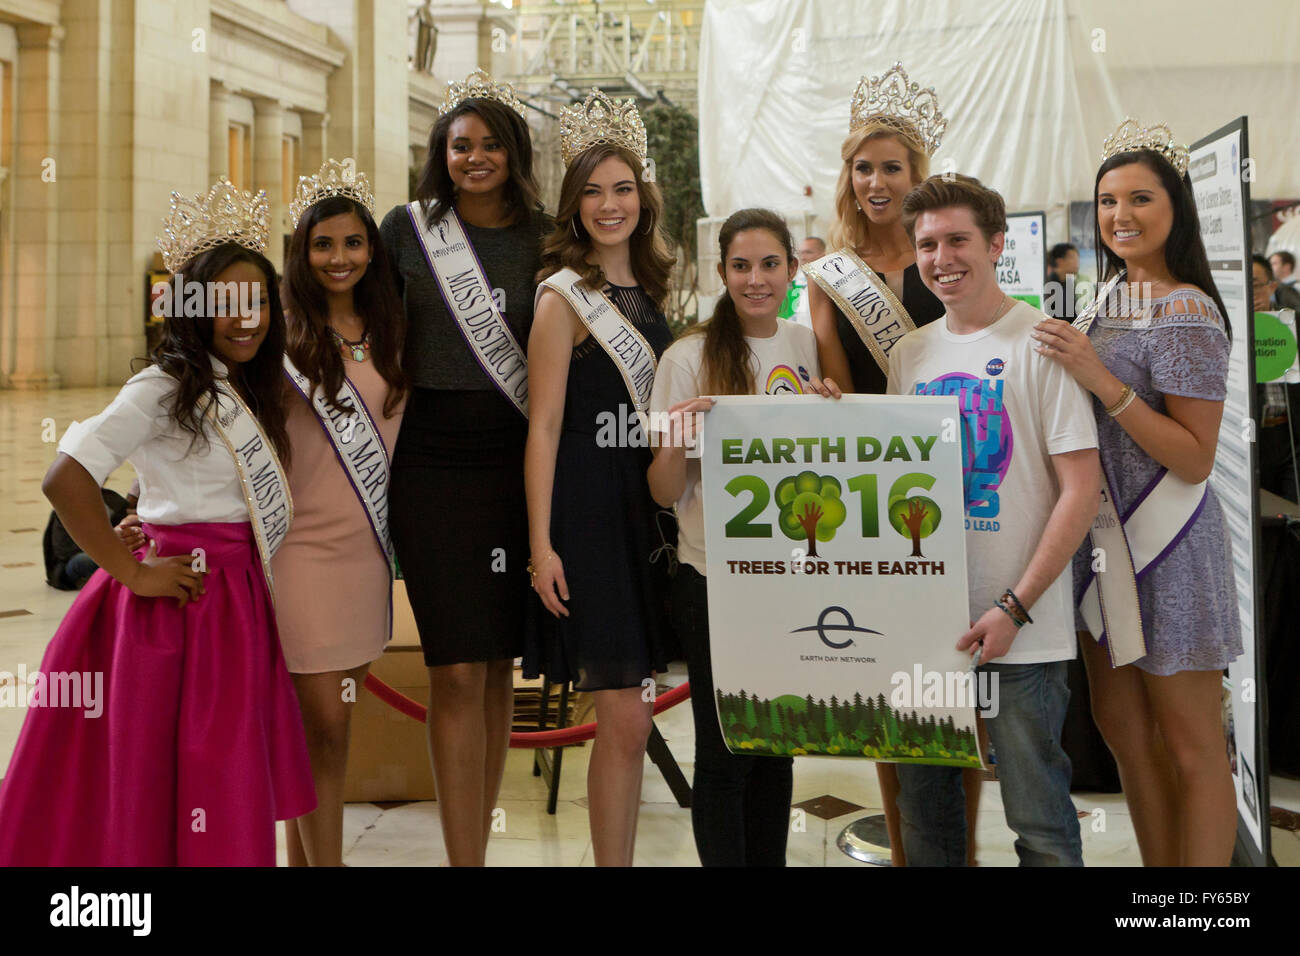 Washington DC, USA. 22nd Apr, 2016. NASA celebrates Earth day with the public in the Main Hall of Union Station - Stock Image